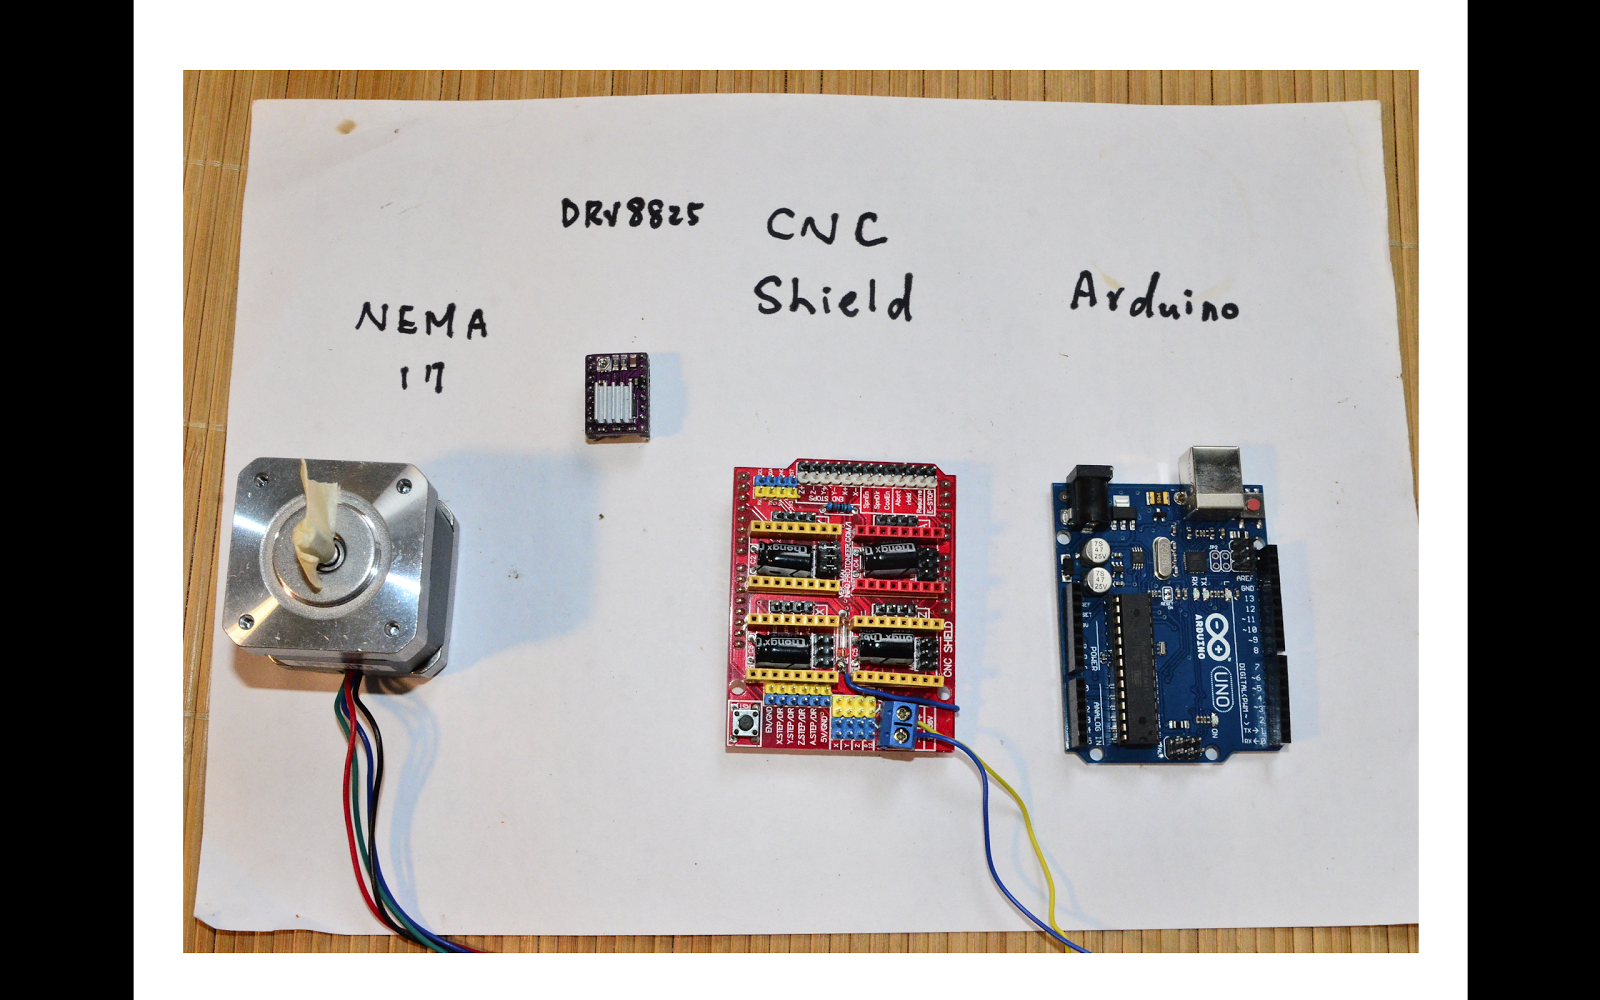 medium resolution of cnc shield is quite useful for stepper motor driving here i demonstrated how to use simple arduino code to drive stepper motor with drv8825